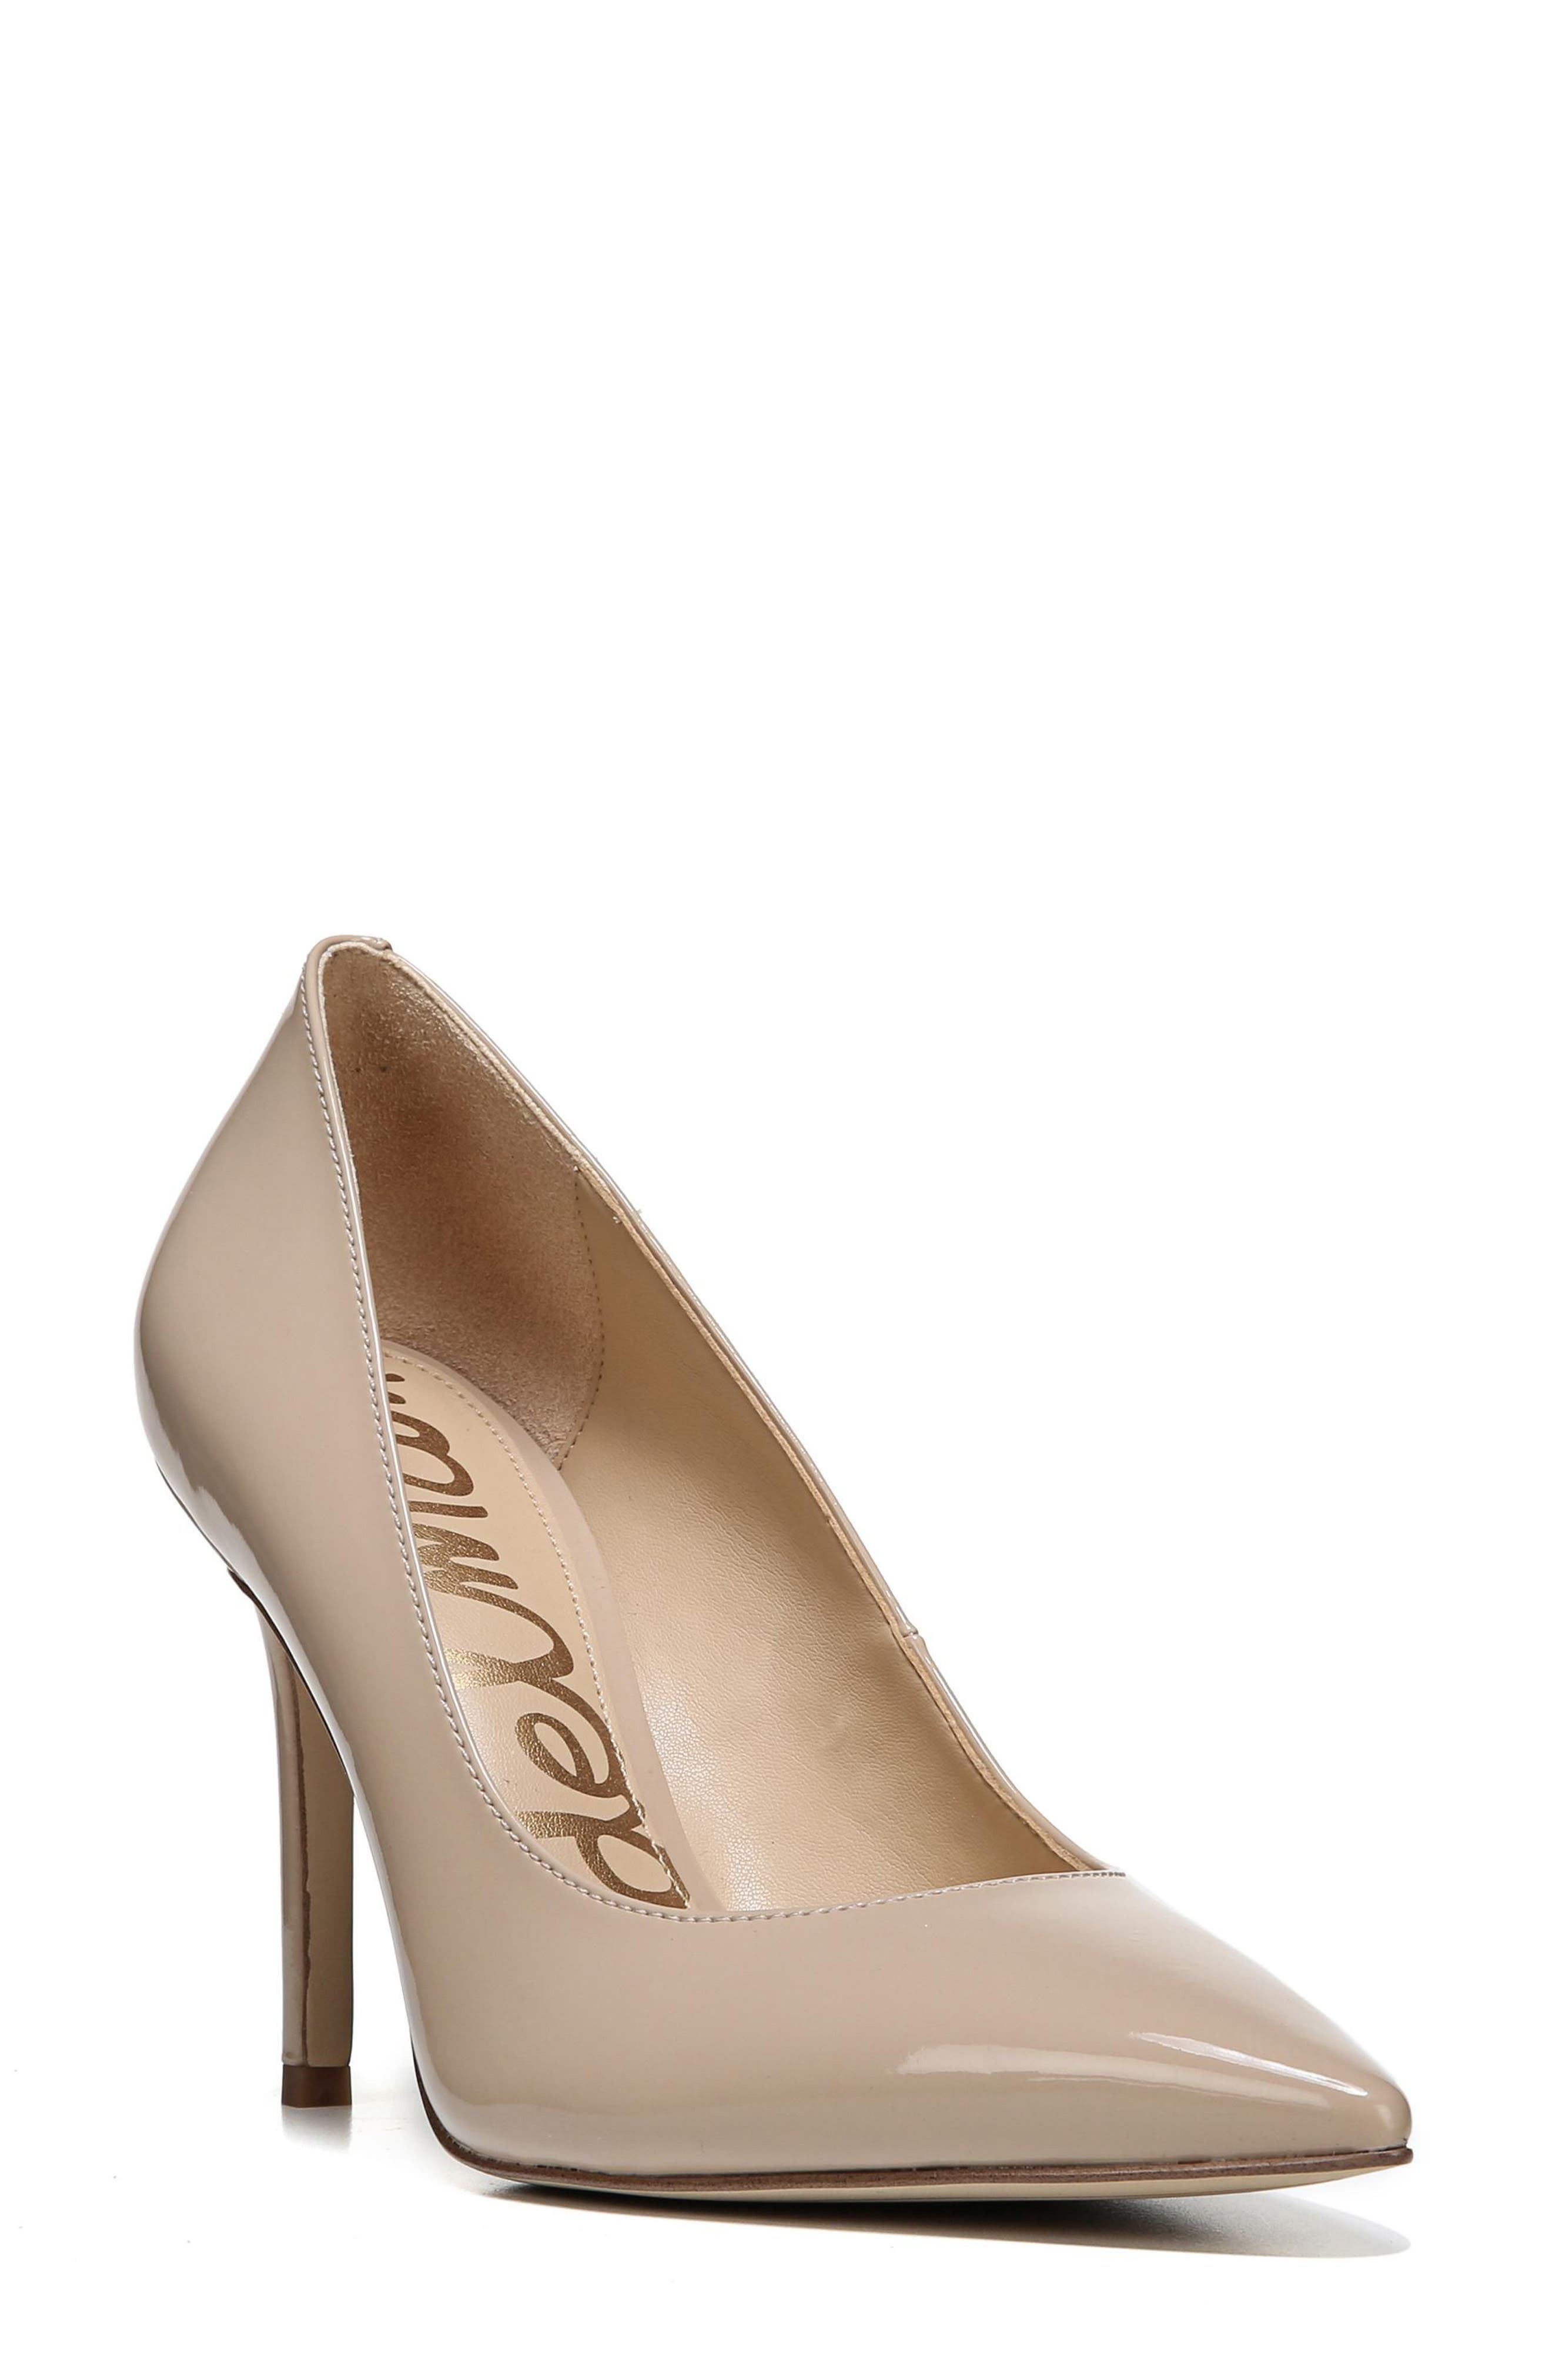 SAM EDELMAN, Hazel Pointy Toe Pump, Main thumbnail 1, color, NUDE LINEN PATENT LEATHER